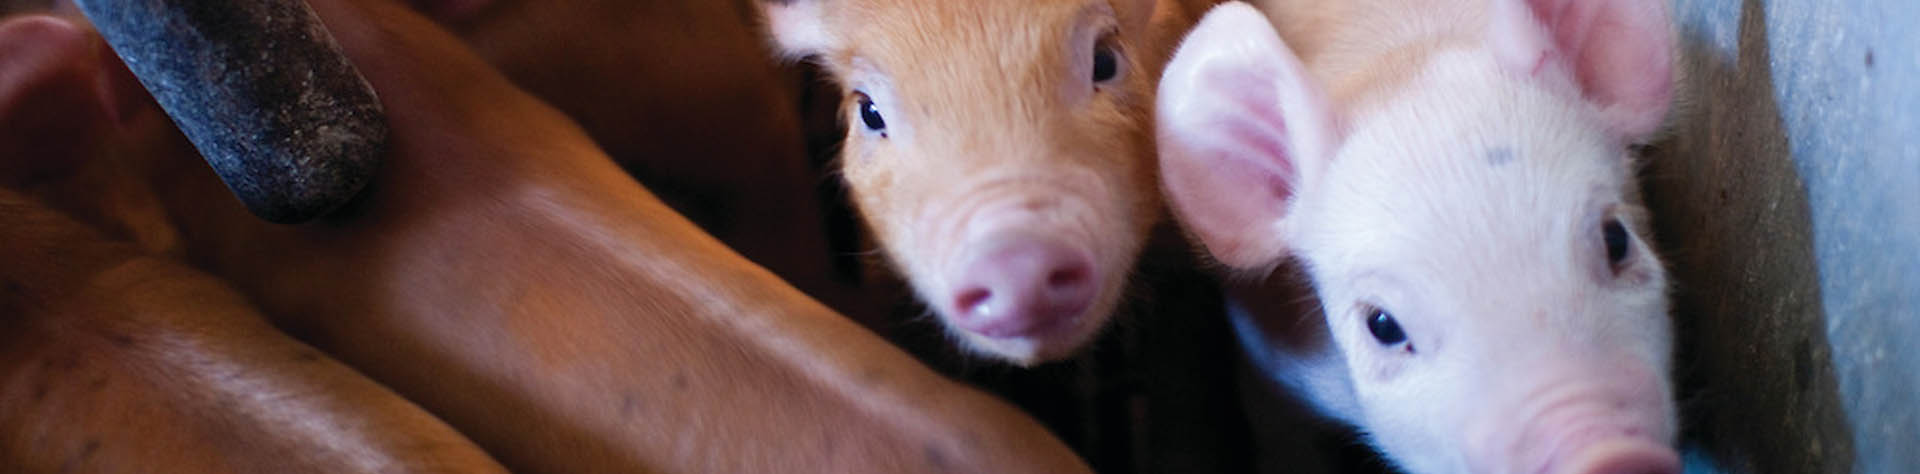 two baby pigs looking at the camera